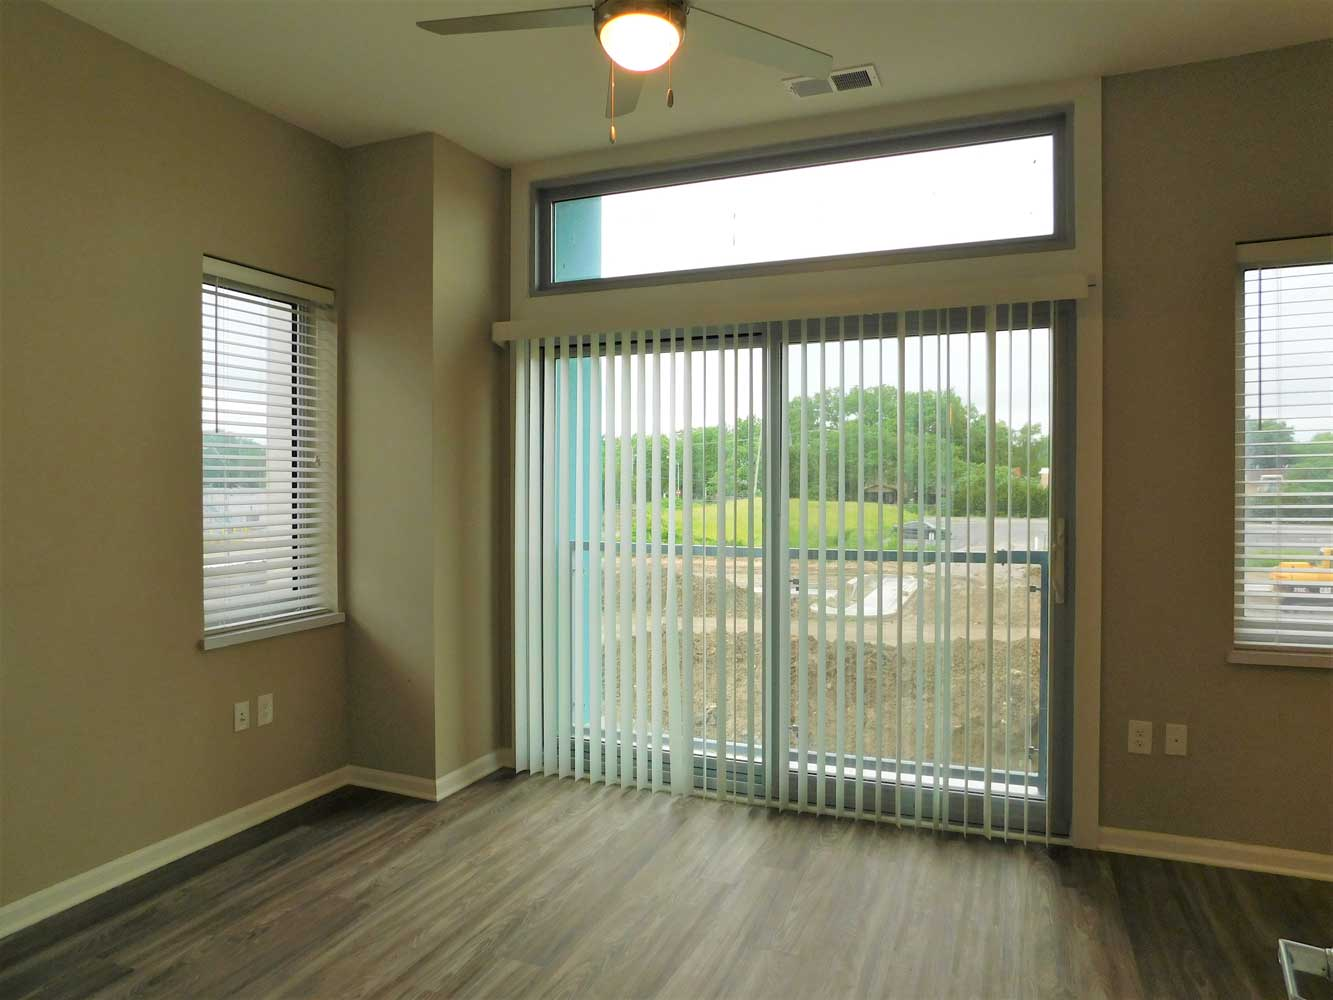 Freight Elevator Available at Midtown Plaza Apartments in Kansas City, MO